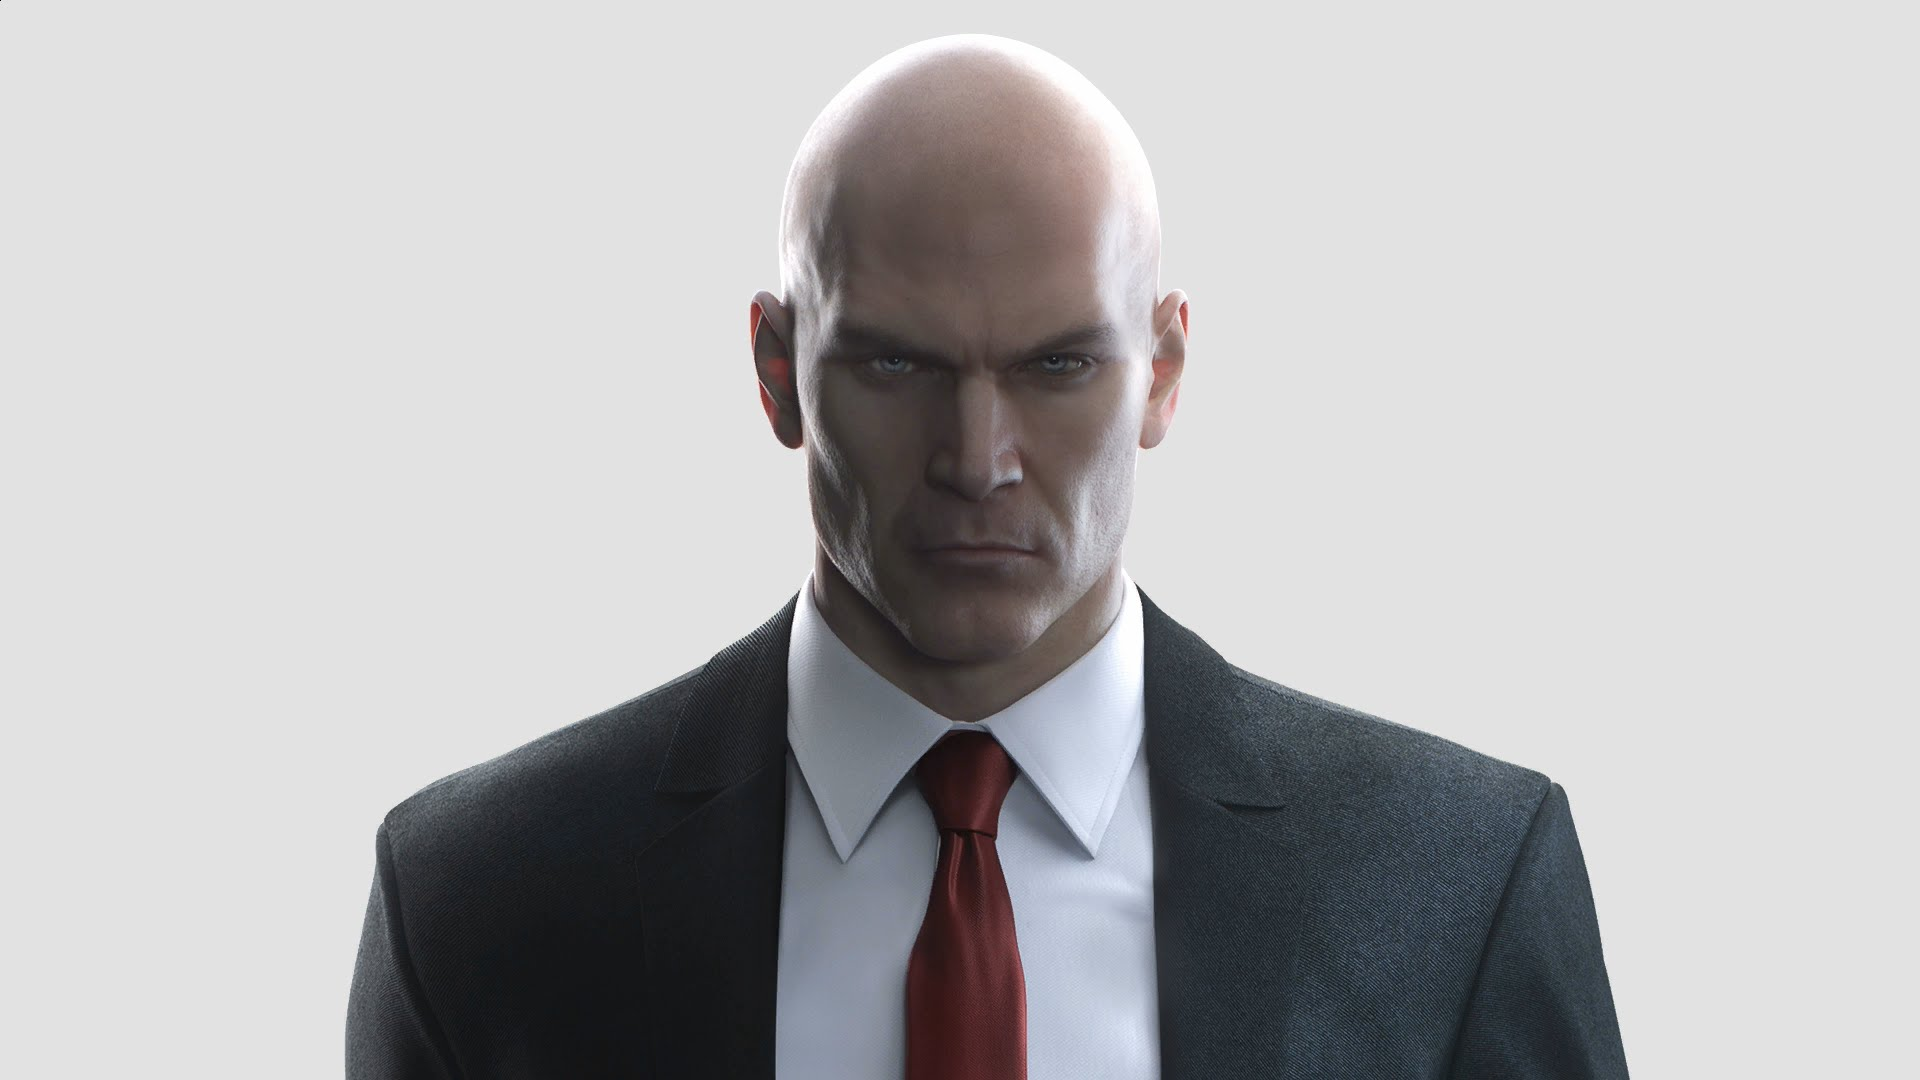 037: Hitman Part 1 [Setup & Training]